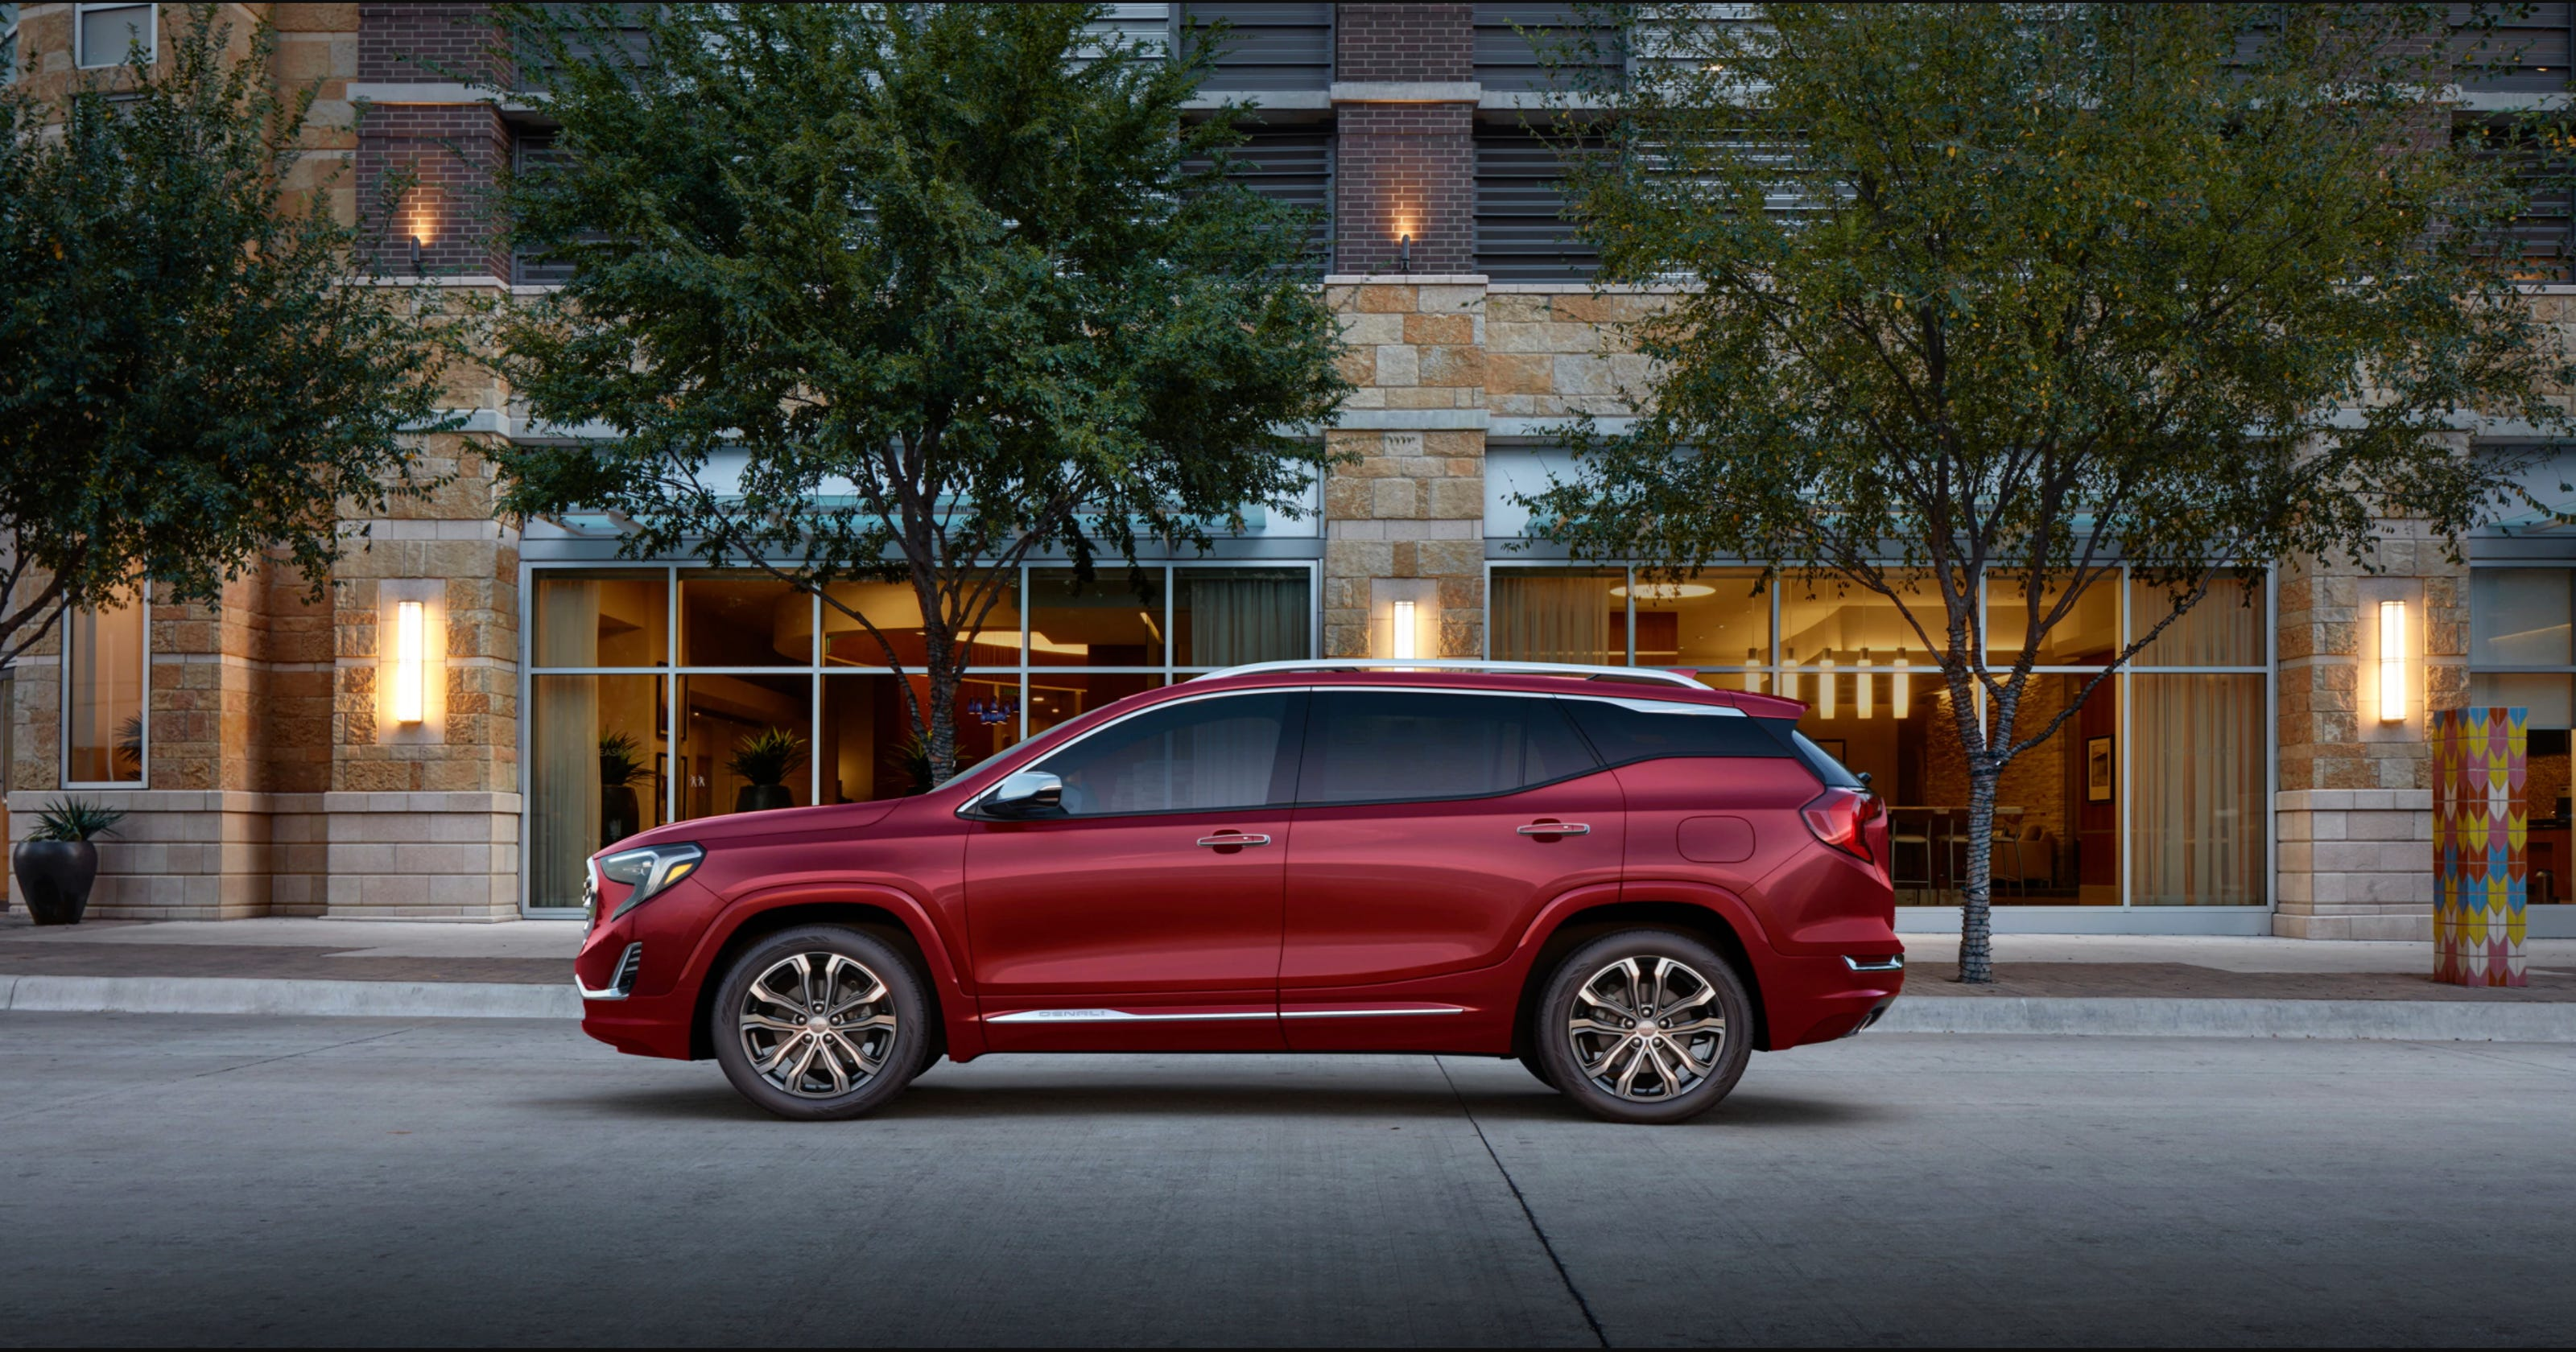 Review 2018 Gmc Terrain Denali Packs And Luxury Into Stylish Small Suv